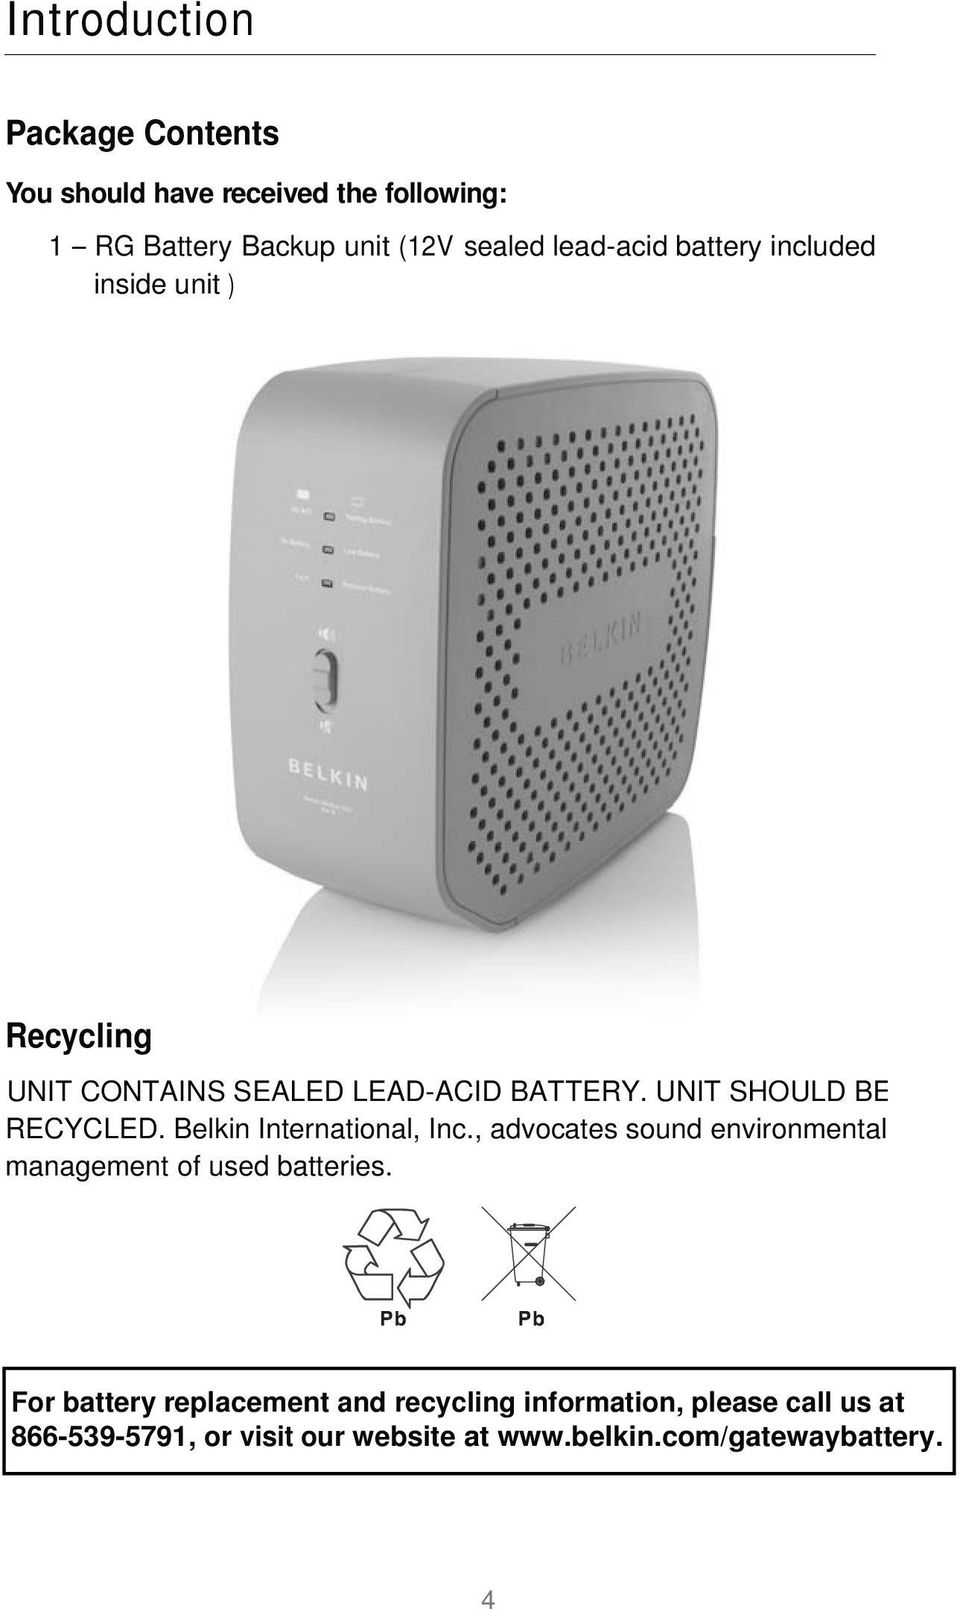 UNIT SHOULD BE RECYCLED. Belkin International, Inc., advocates sound environmental management of used batteries.